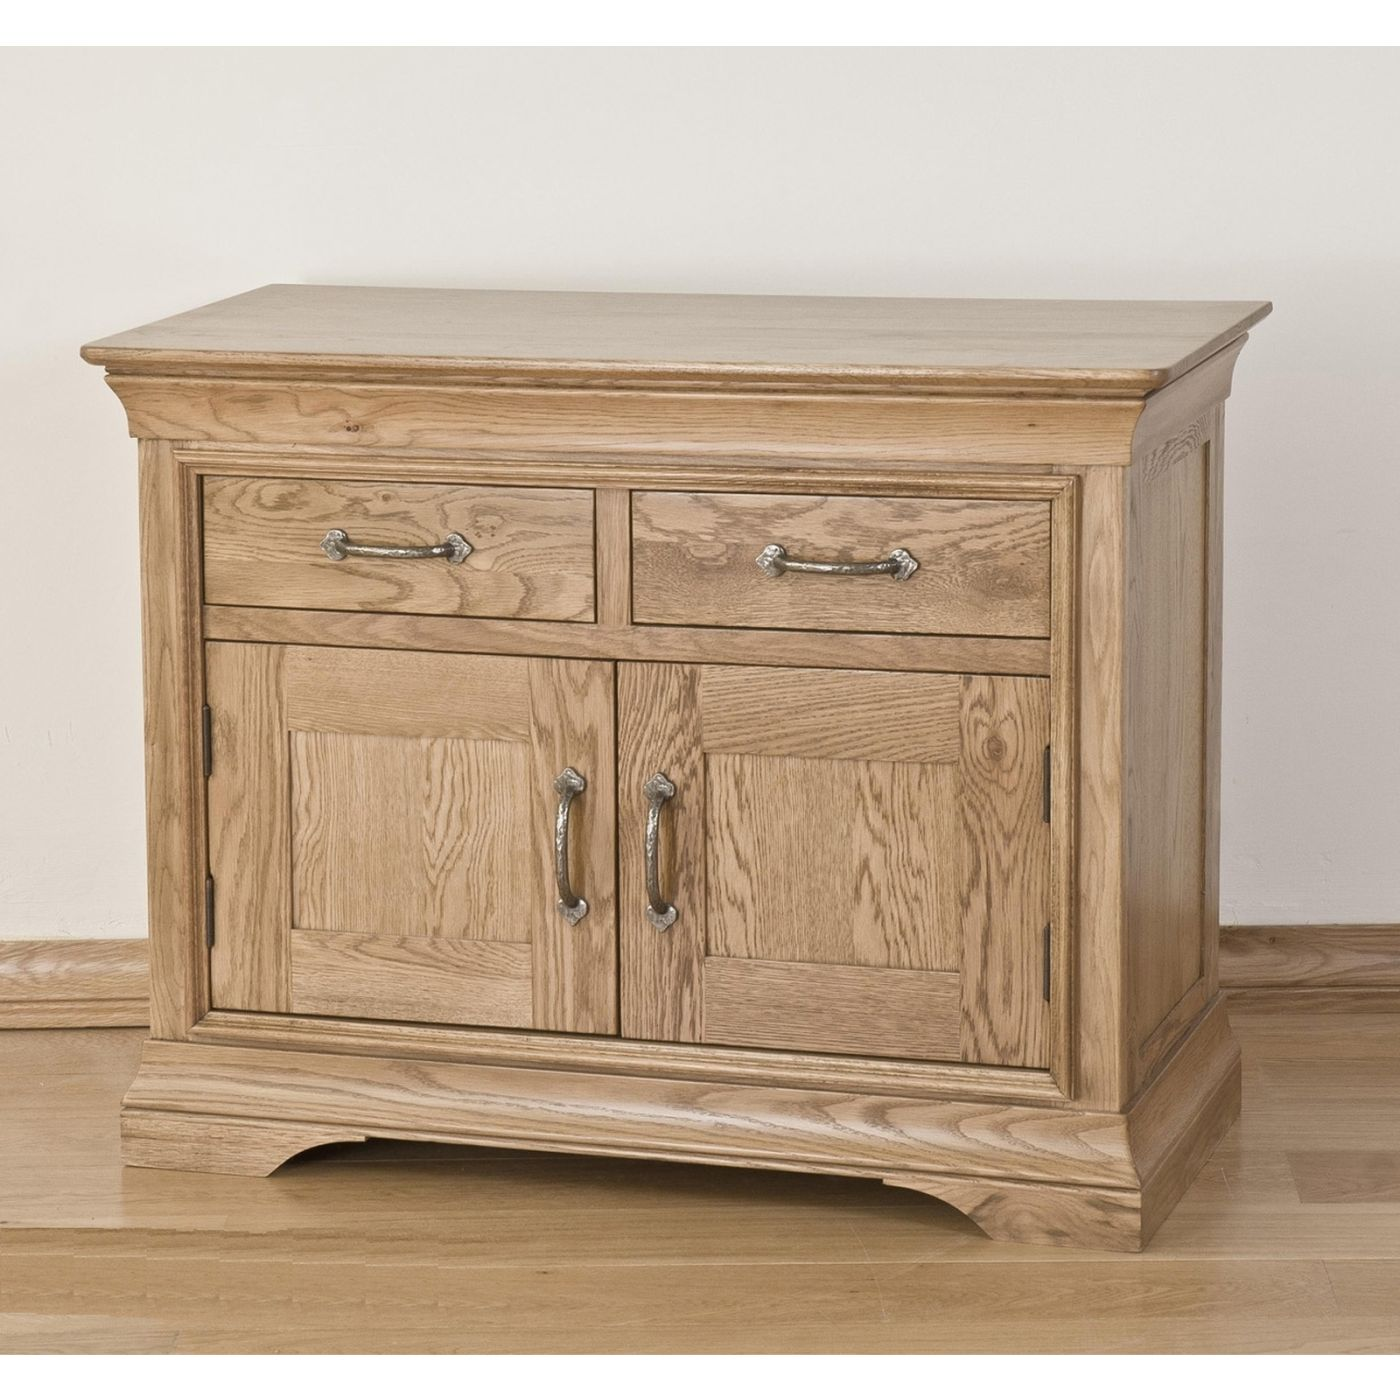 Dining Room Display Cabinet: Toulon Solid Oak Furniture Small Dining Room China Display